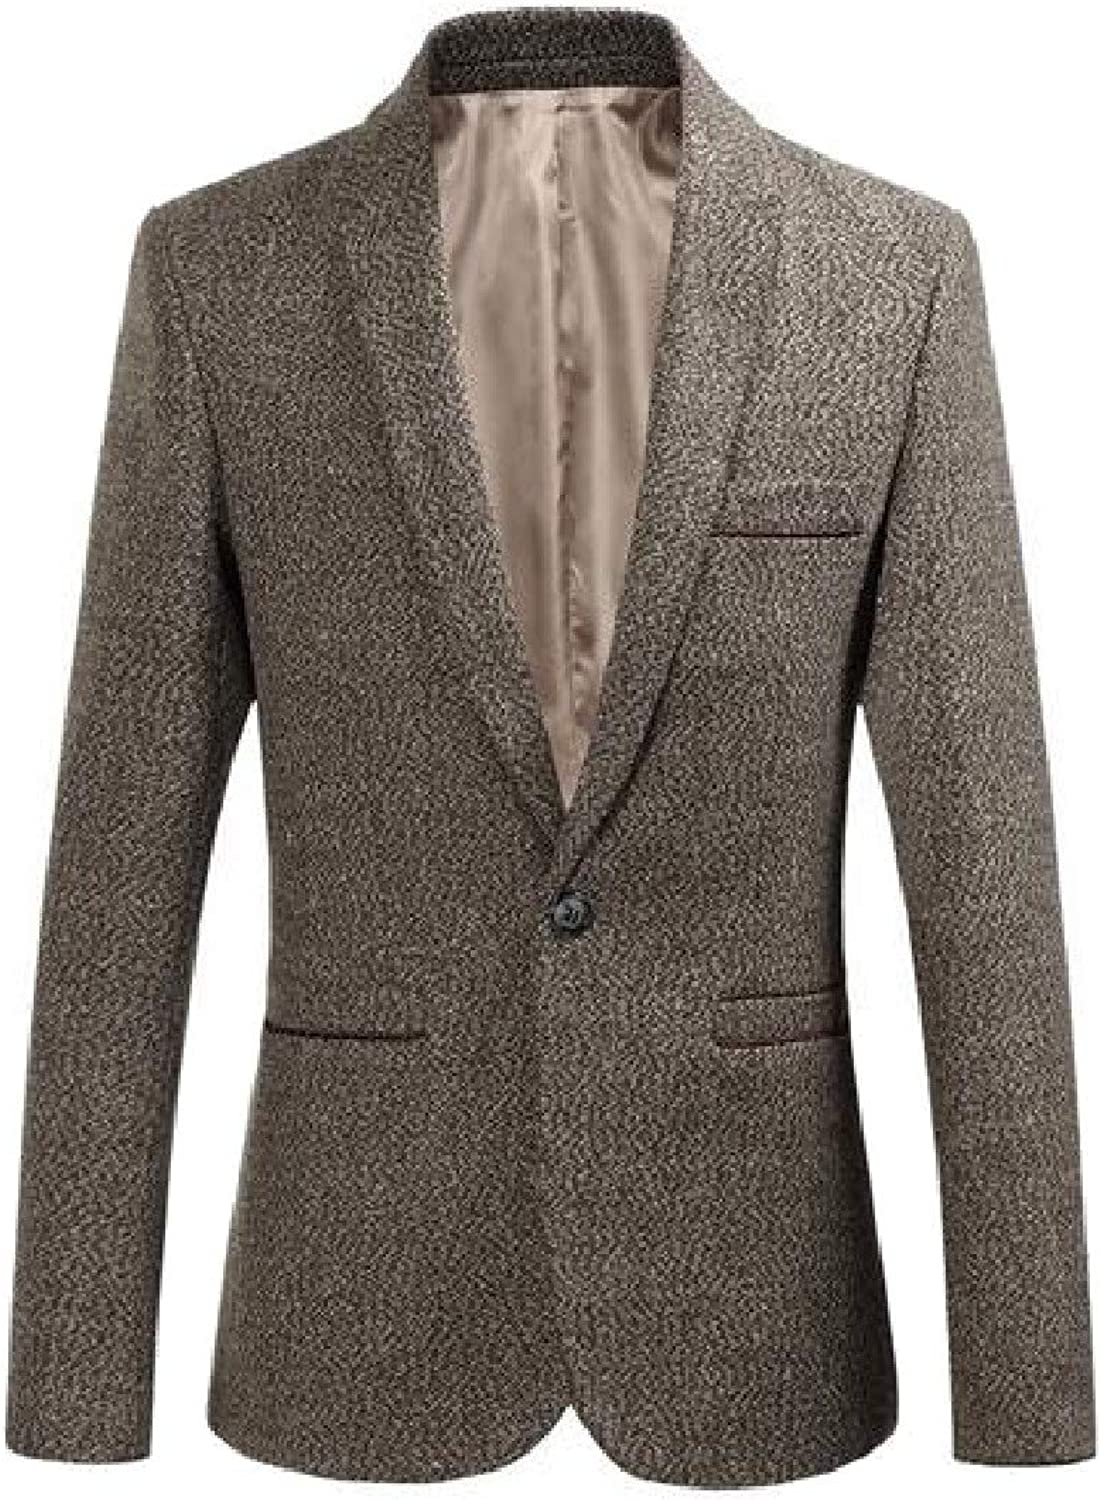 45fd2b0a13a4 TaoNice Mens Mens Mens Plus Size Career Lapel One Button Business Blazer  Coat 0658be